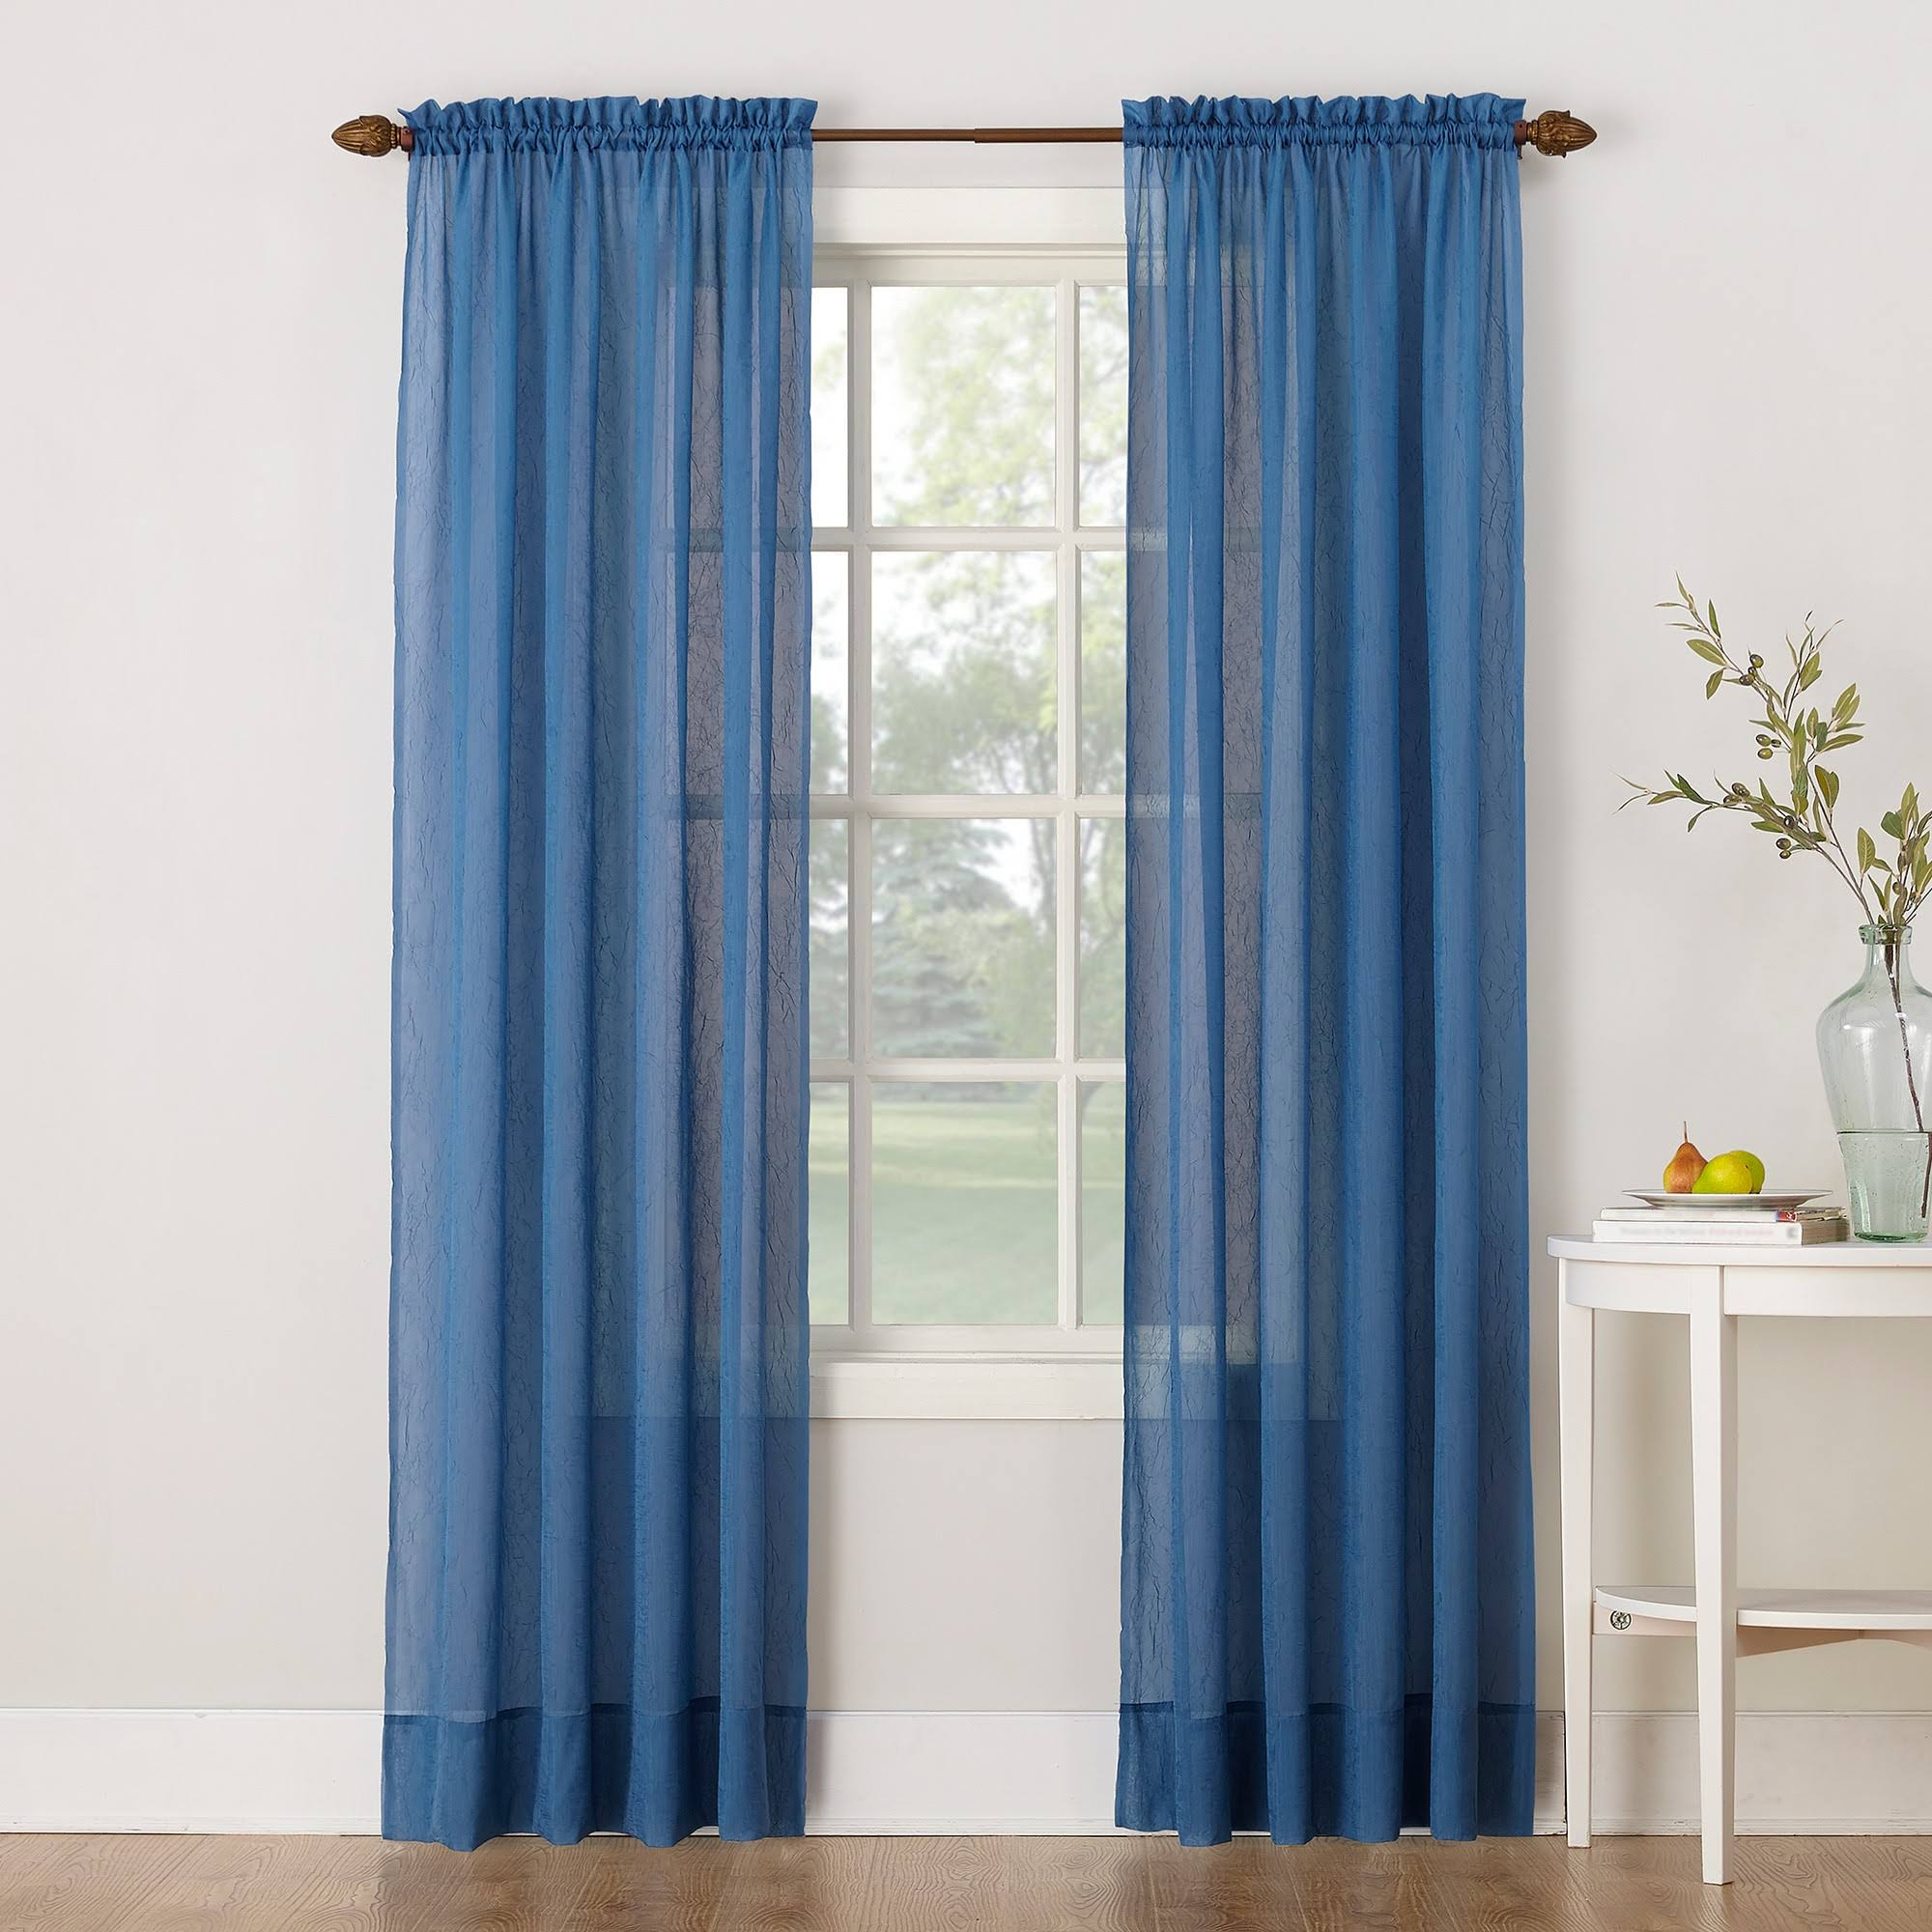 "No. 918 Crushed Voile 51"" x 84"" Sheer Curtain Panel - Blue"